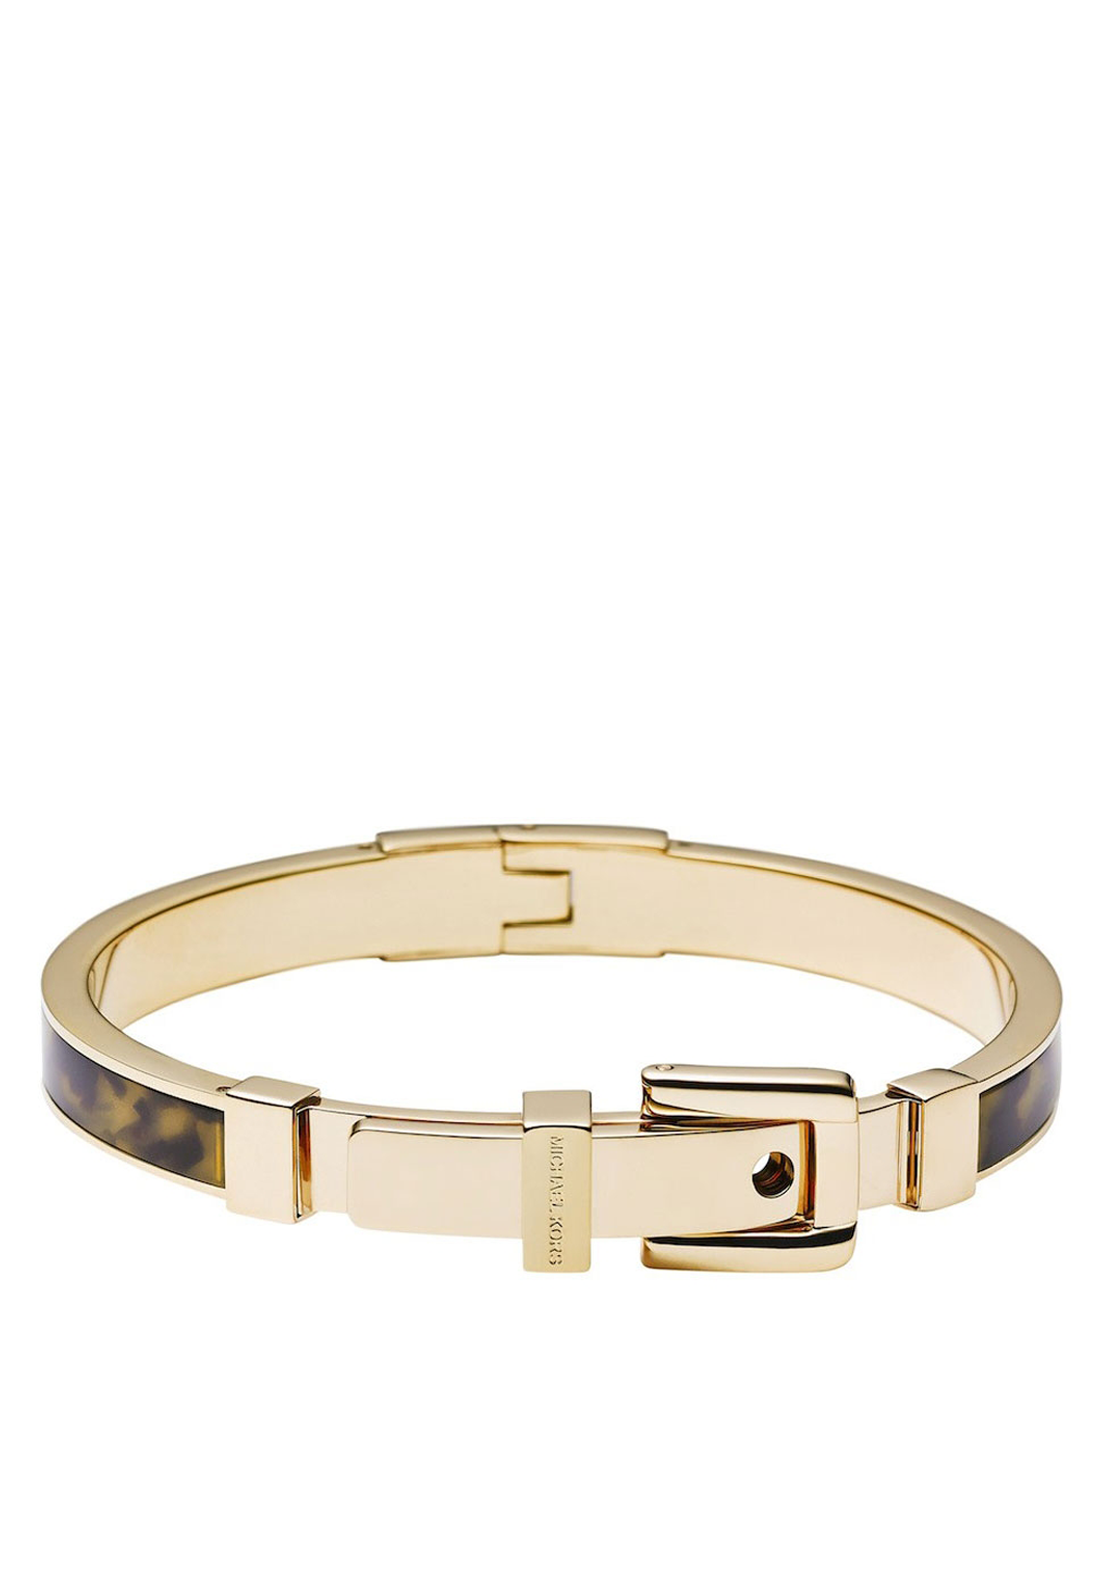 Michael Kors Womens Bedford Buckle Bangle, Gold